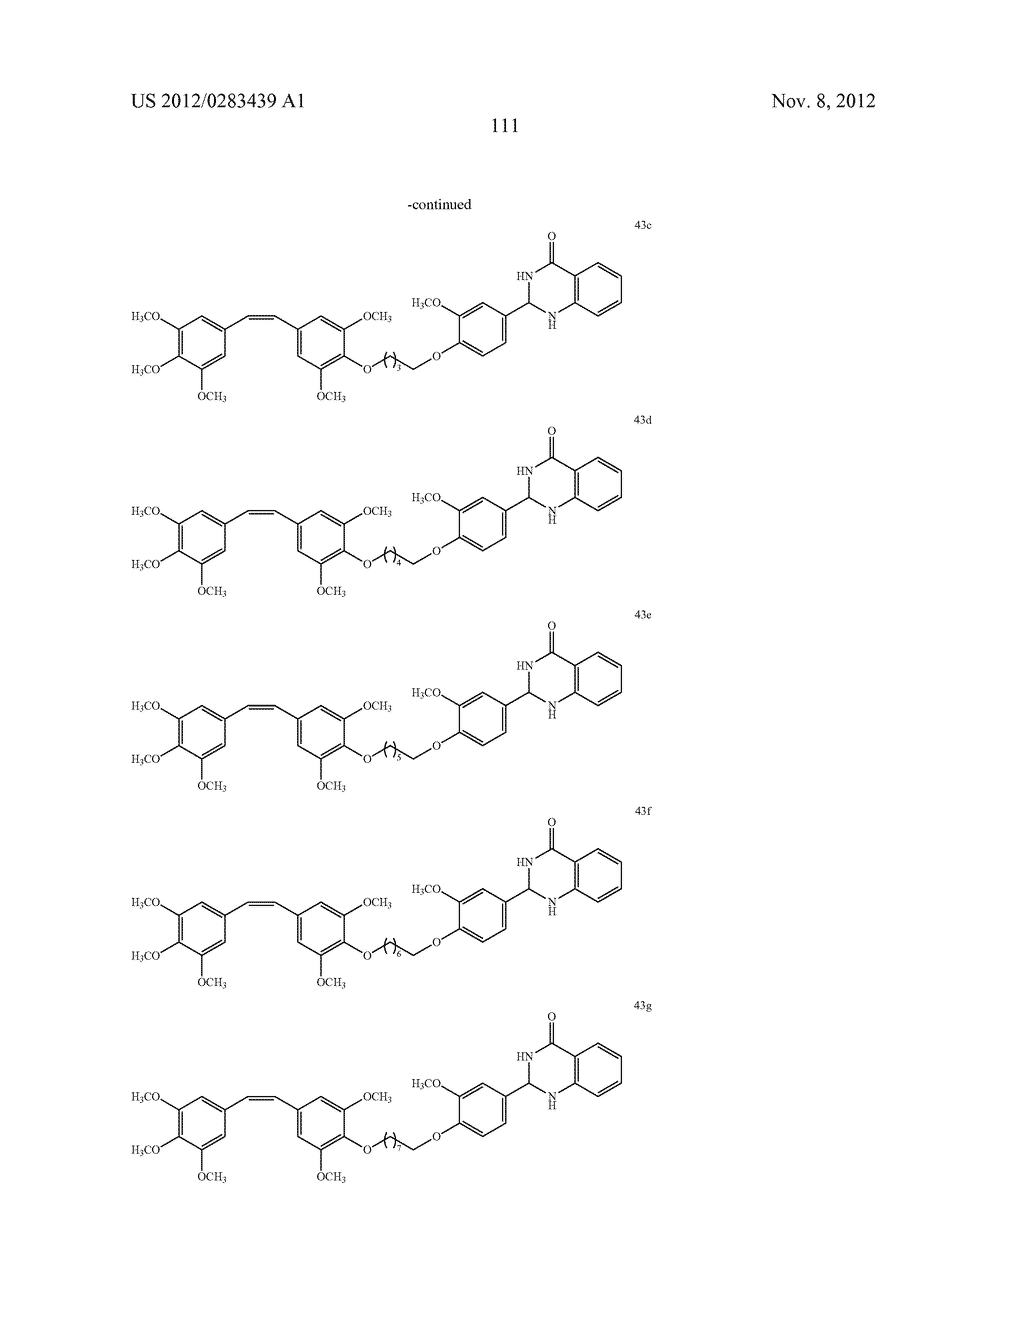 ISOXAZOLE/ISOXAZOLINE/COMBRETASTATIN LINKED DIHYDROQUINAZOLINONE HYBRIDS     AS POTENTIAL ANTICANCER AGENTS AND PROCESS FOR THE PREPARATION THEREOF - diagram, schematic, and image 113